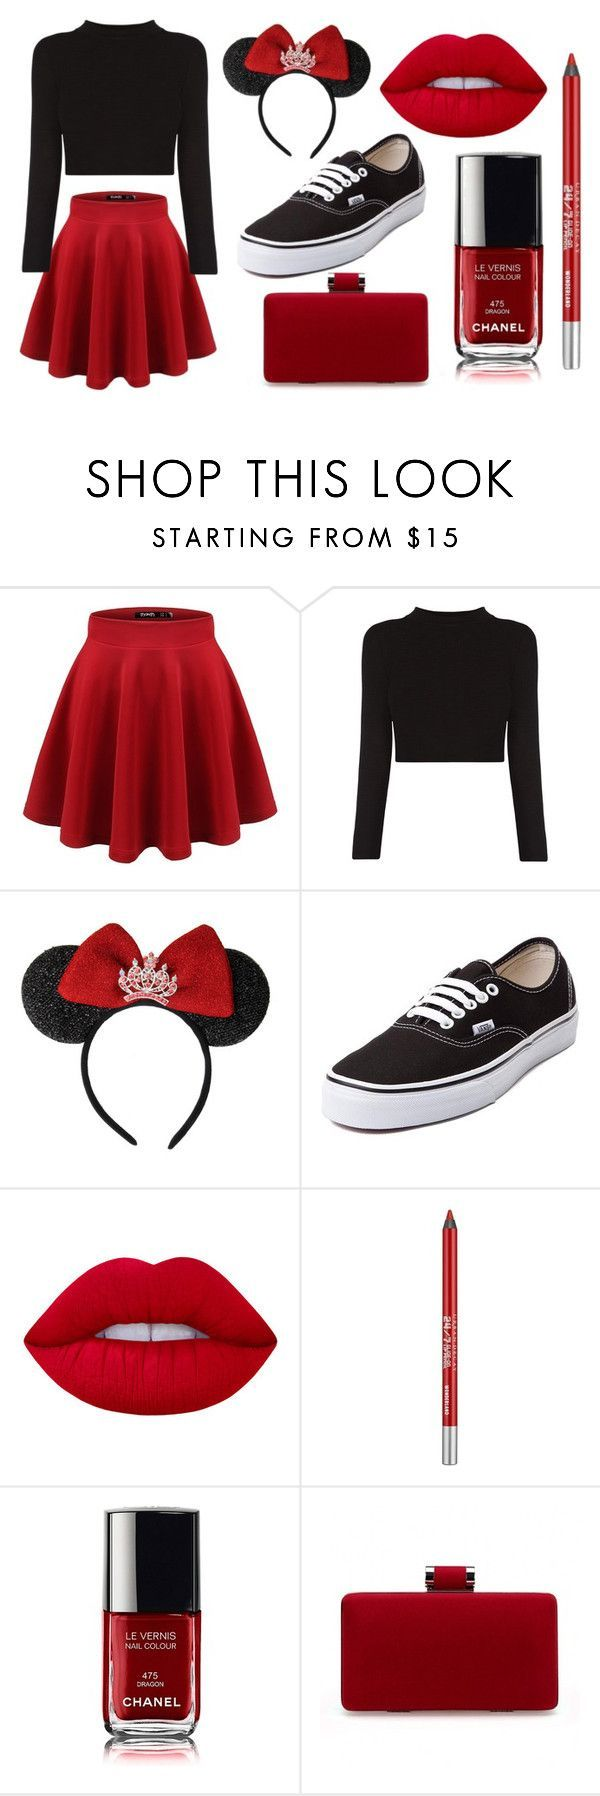 Cute components for a Modern Minnie Mouse. Cute and practical - except I'd need a bigger bag.